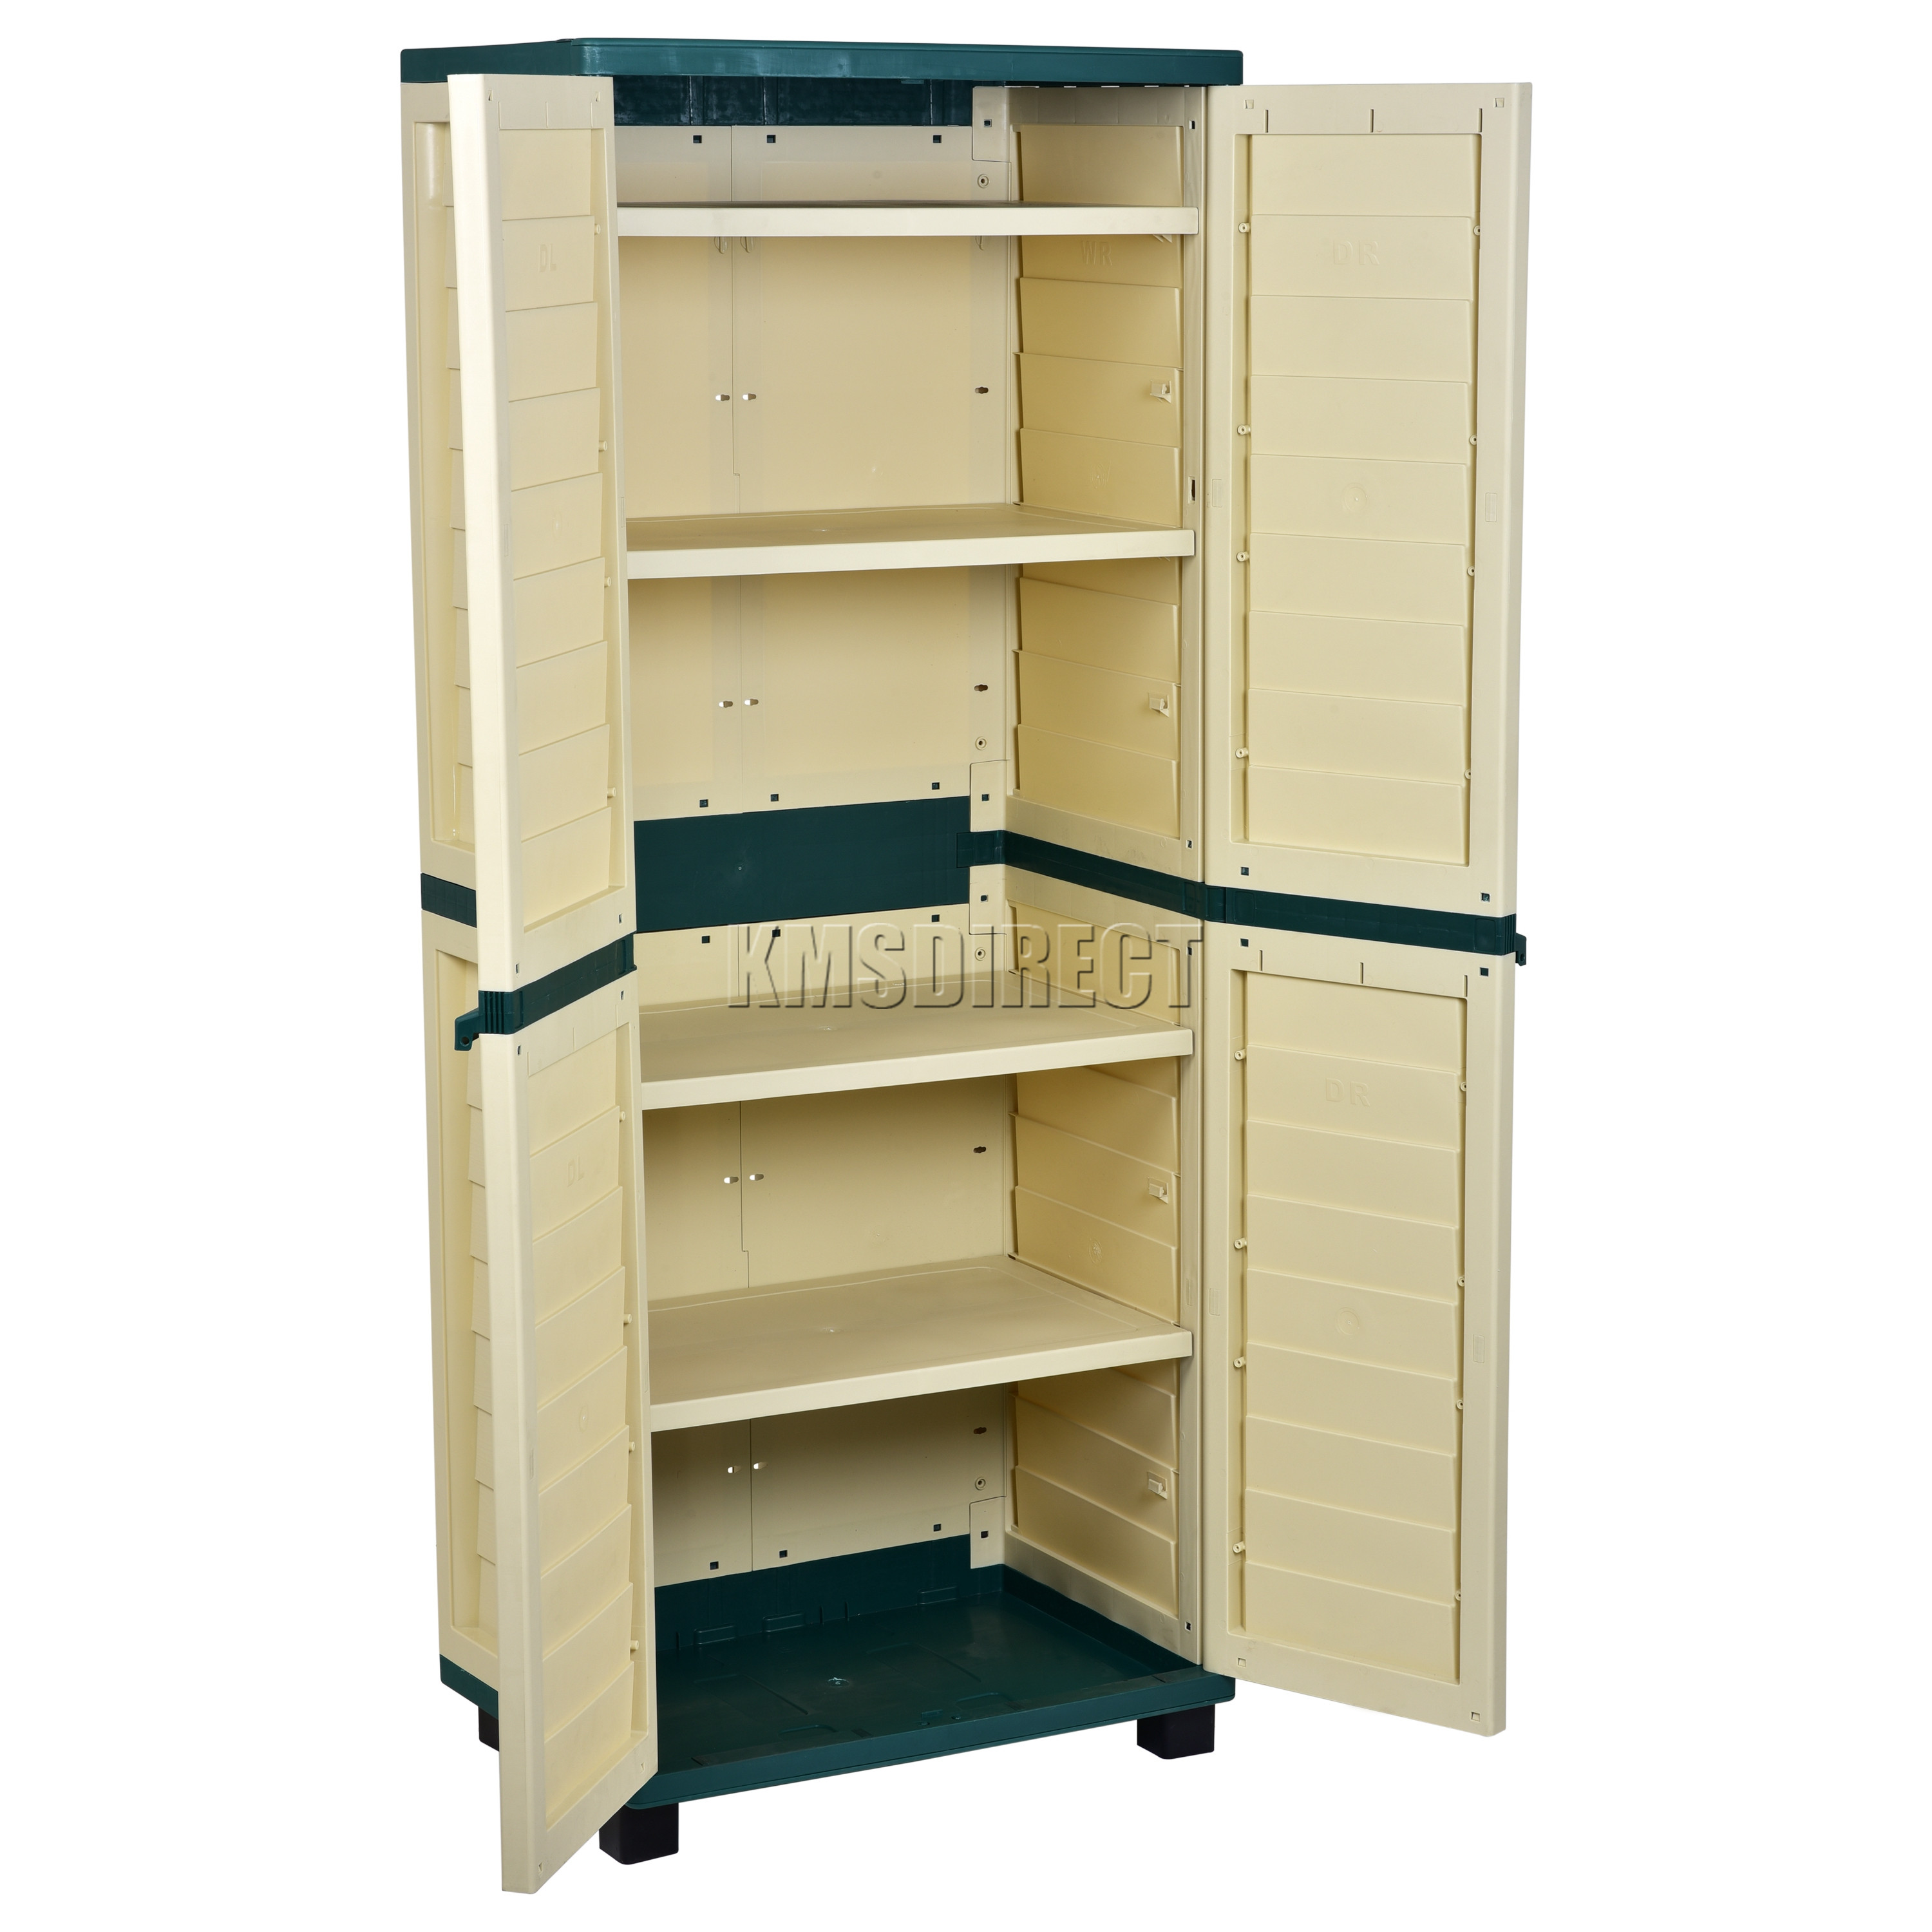 Best ideas about Outdoor Storage Cabinets With Shelves . Save or Pin Starplast Outdoor Plastic Garden Utility Cabinet With 4 Now.